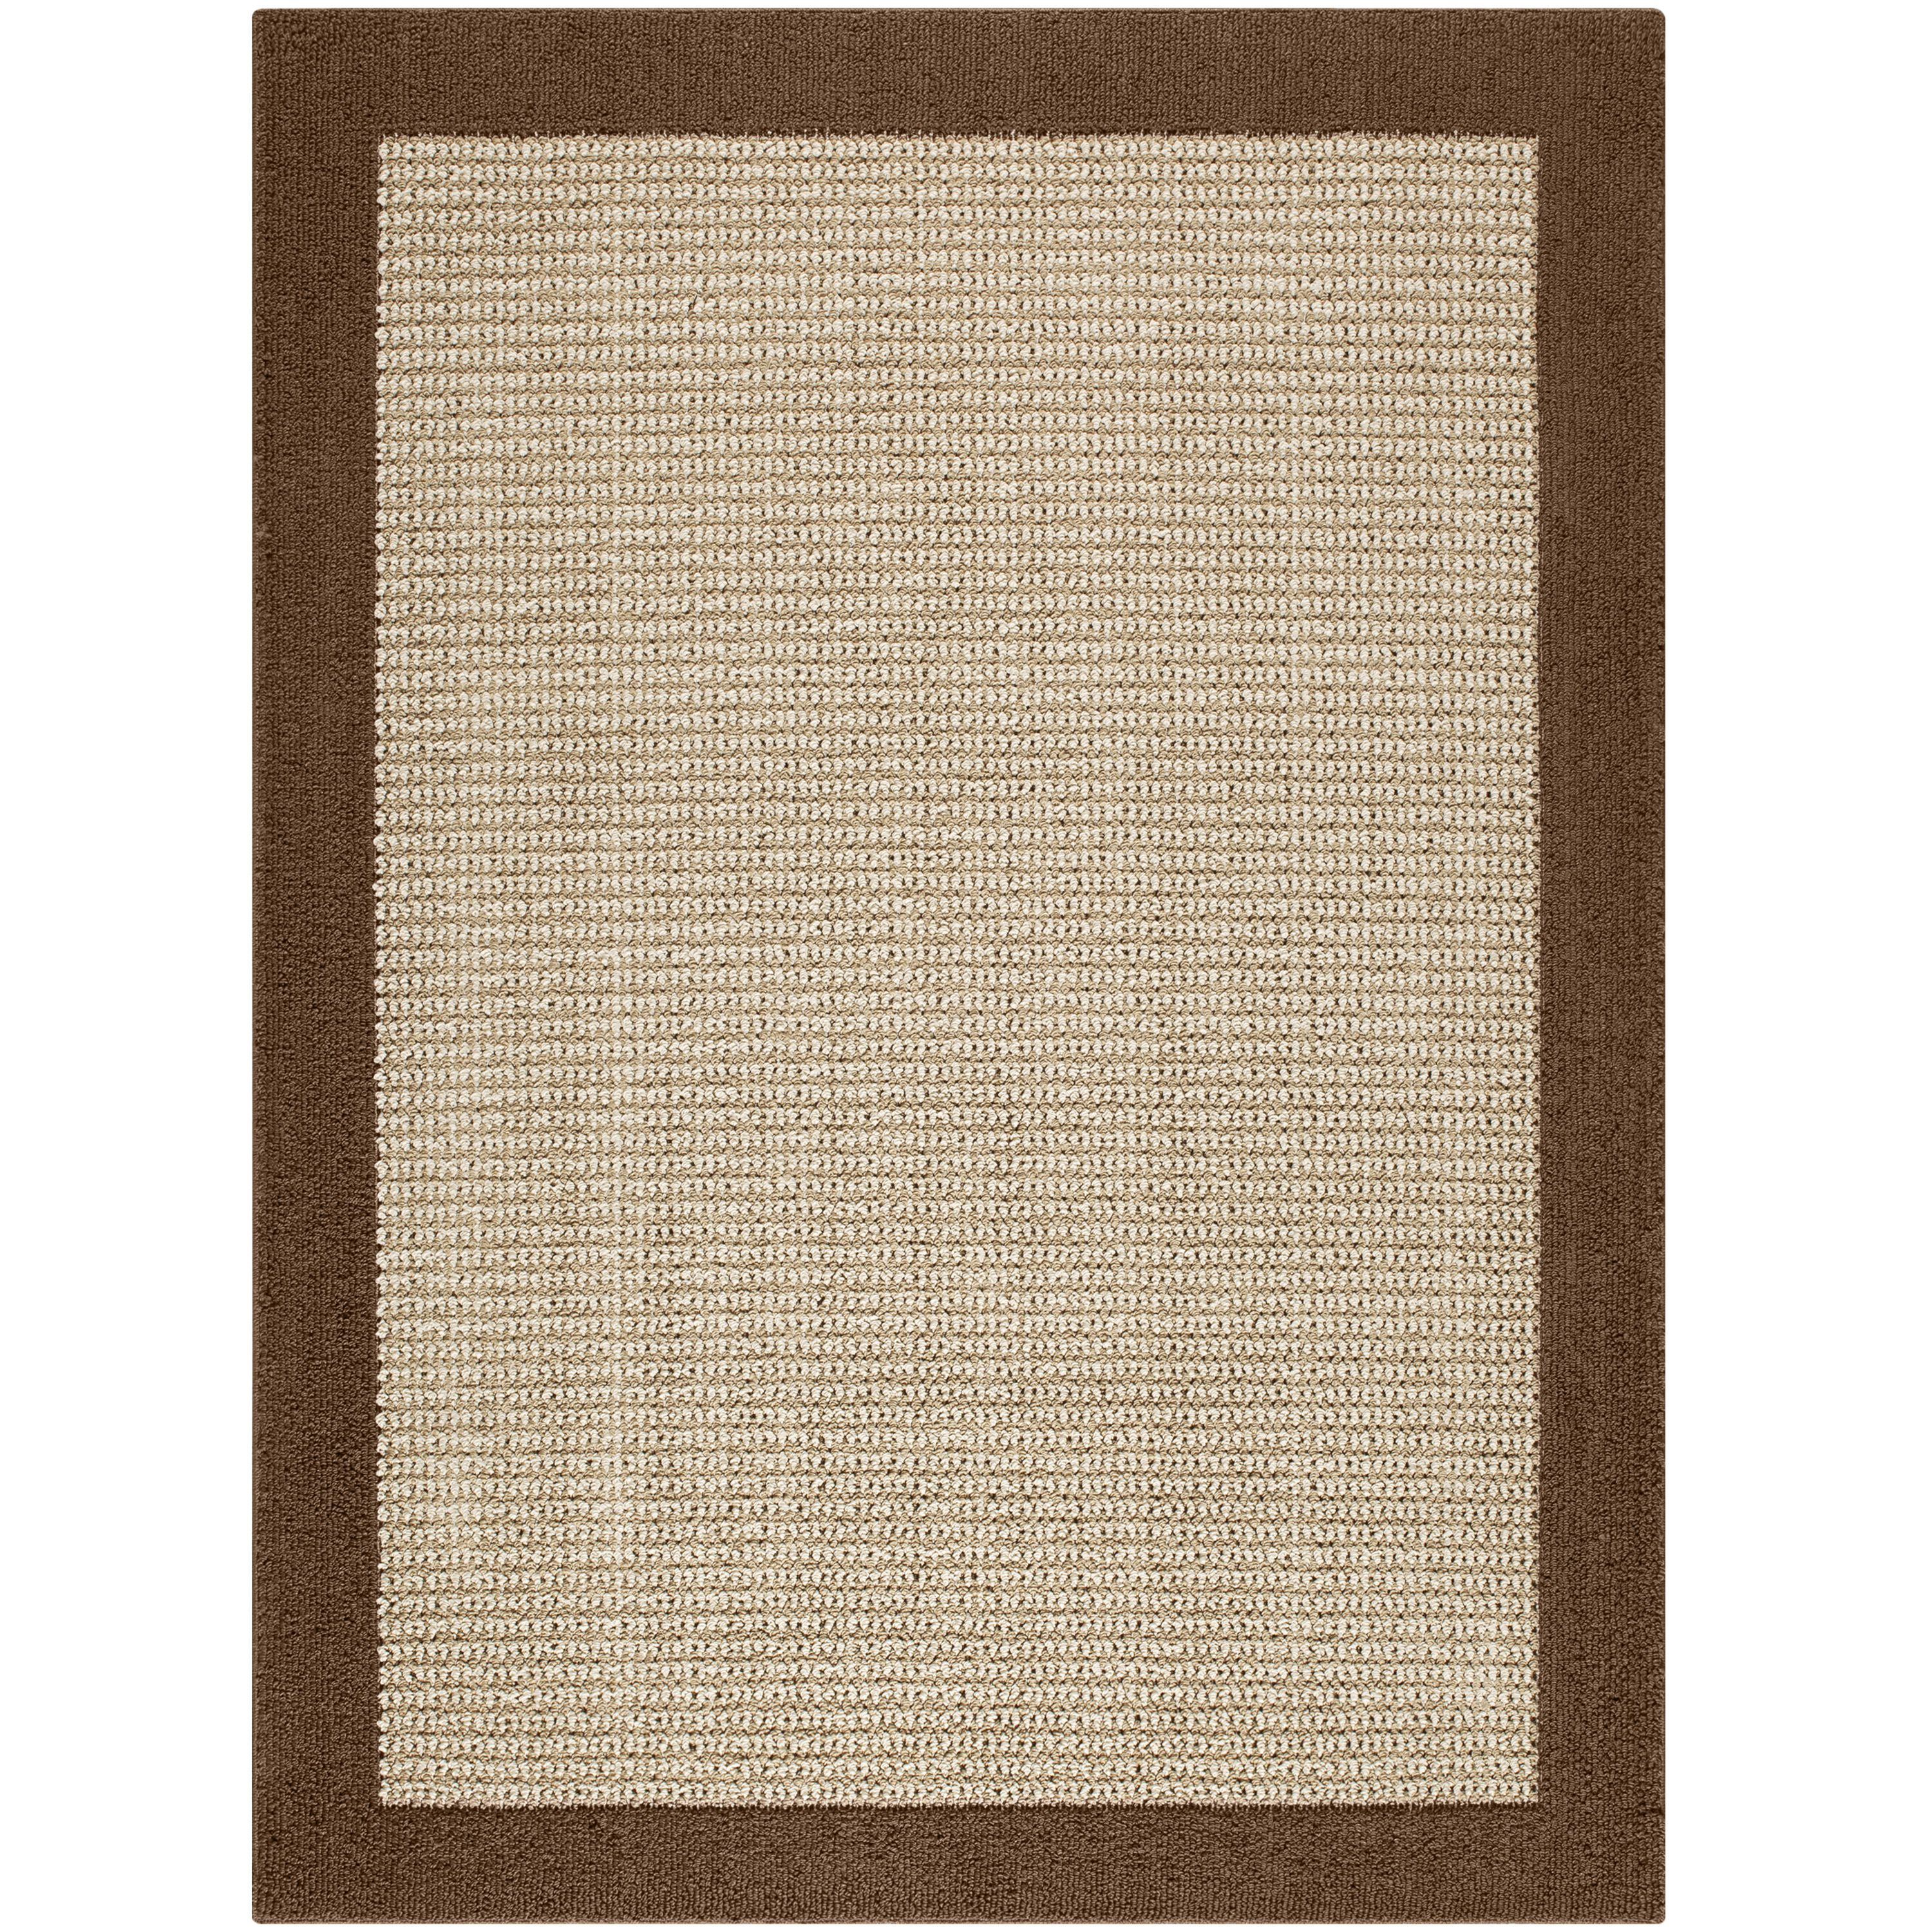 Mainstays Faux Sisal Tufted High Low Loop Area Rug or Runner, Multiple Sizes and Colors by Maples Industries, Inc.